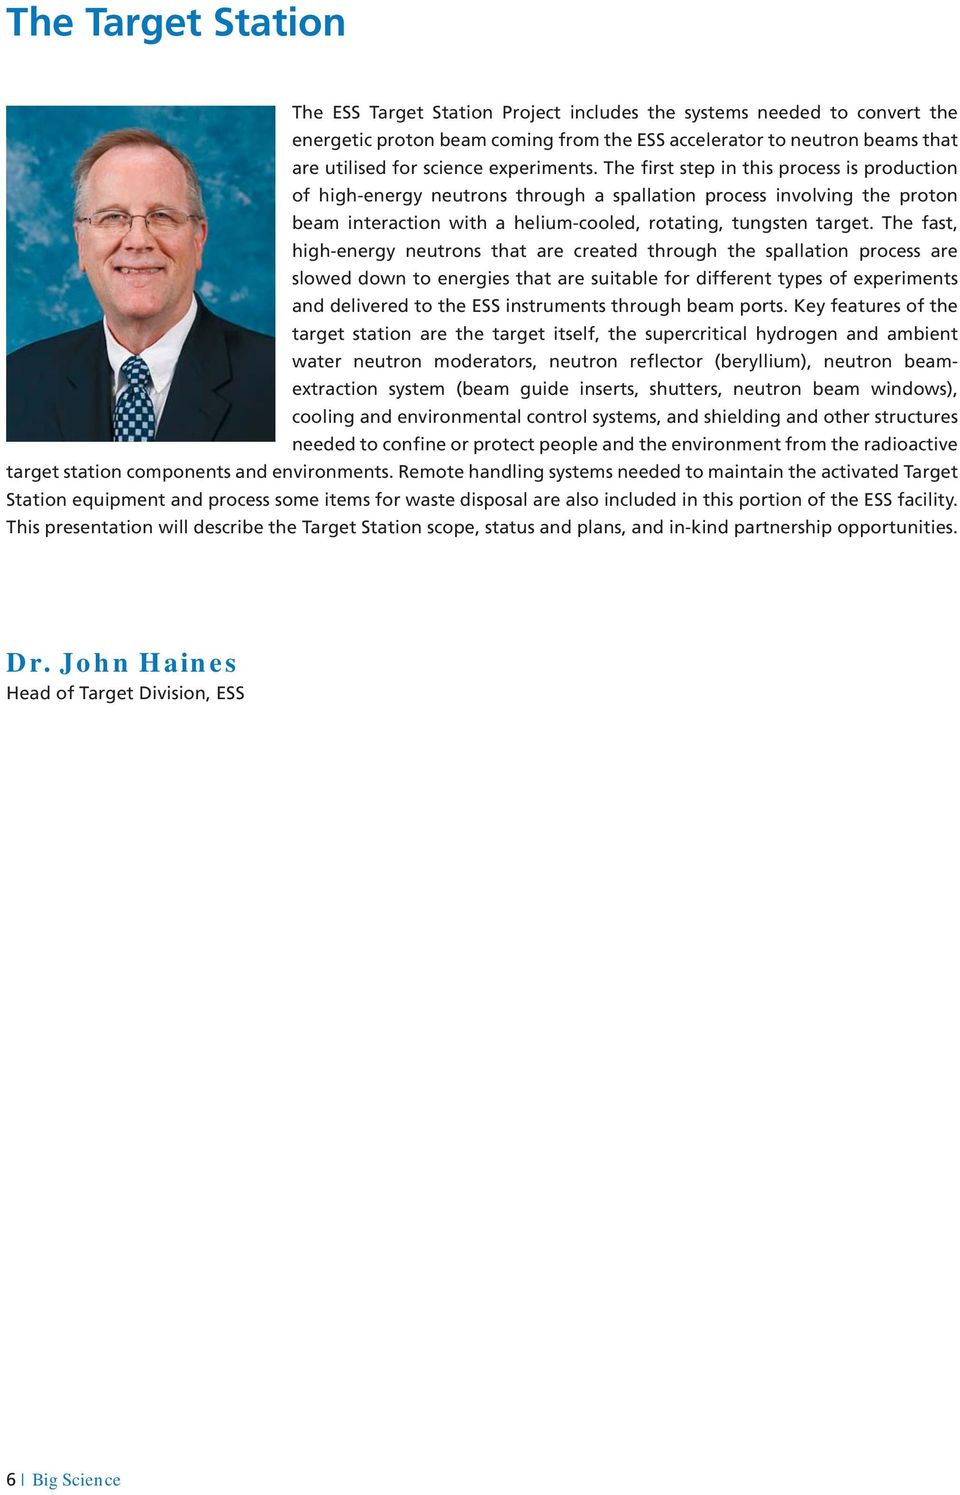 The fast, high-energy neutrons that are created through the spallation process are slowed down to energies that are suitable for different types of experiments and delivered to the ESS instruments